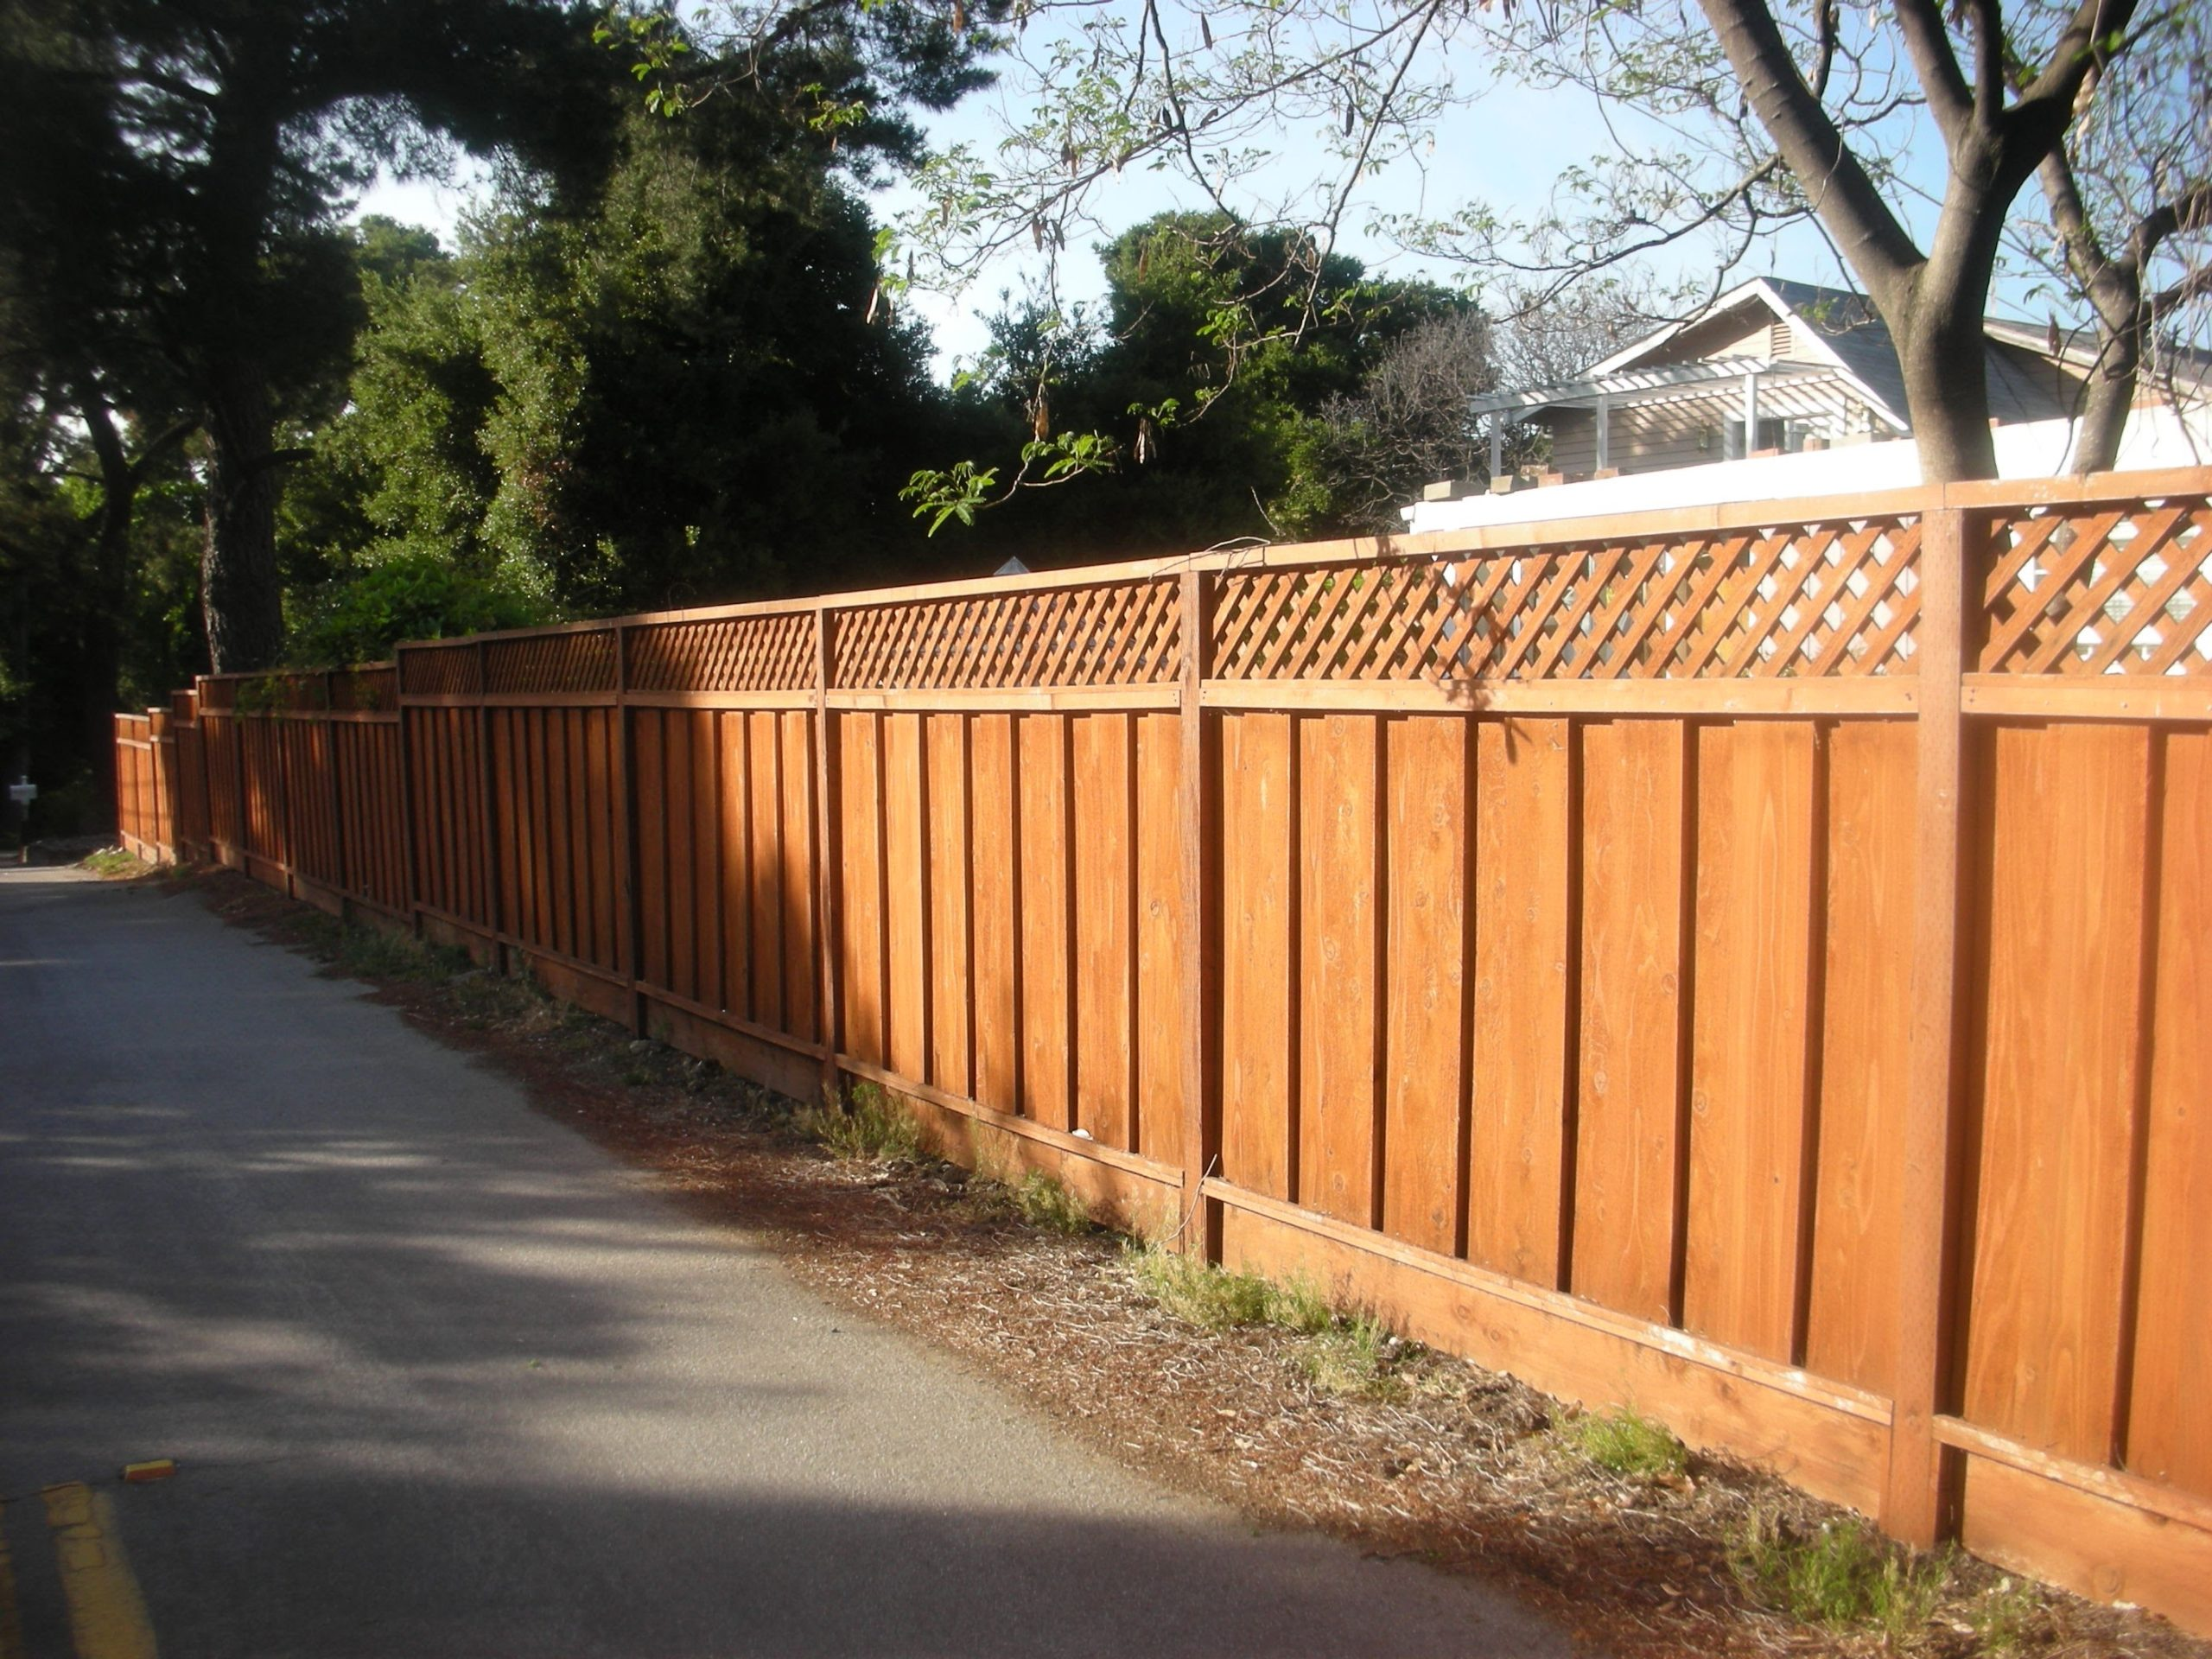 residential redwood fence with lattice Pittsburgh, CA